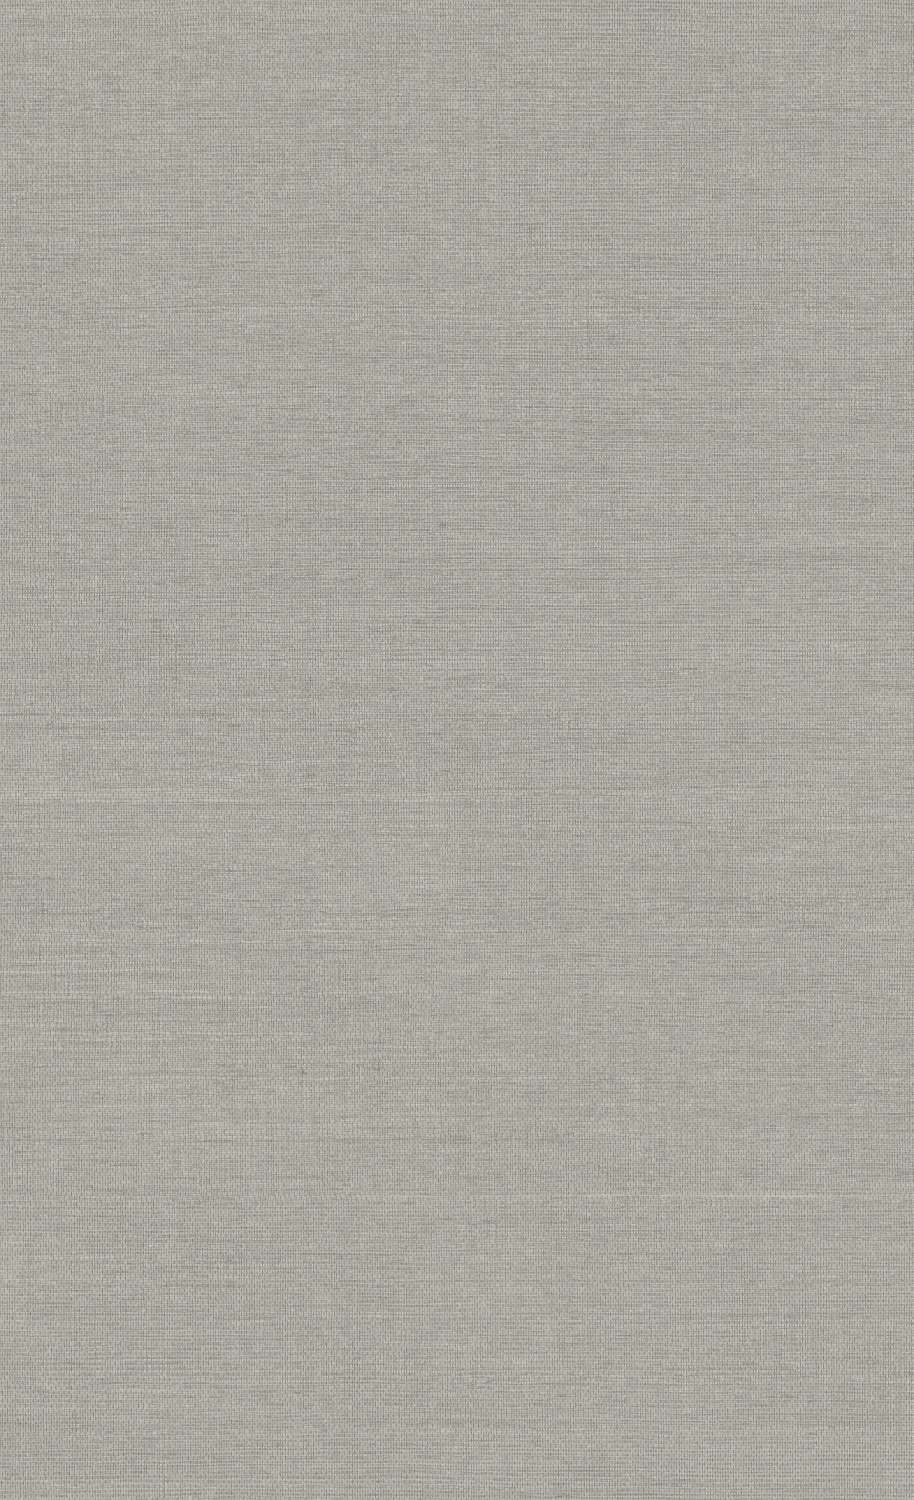 Grey Commercial Wallpaper C7267. Salon Wallpaper. Neutral Wallpaper. Plain Wallpaper. Corporate Wallpaper. Industrial Wallpaper.